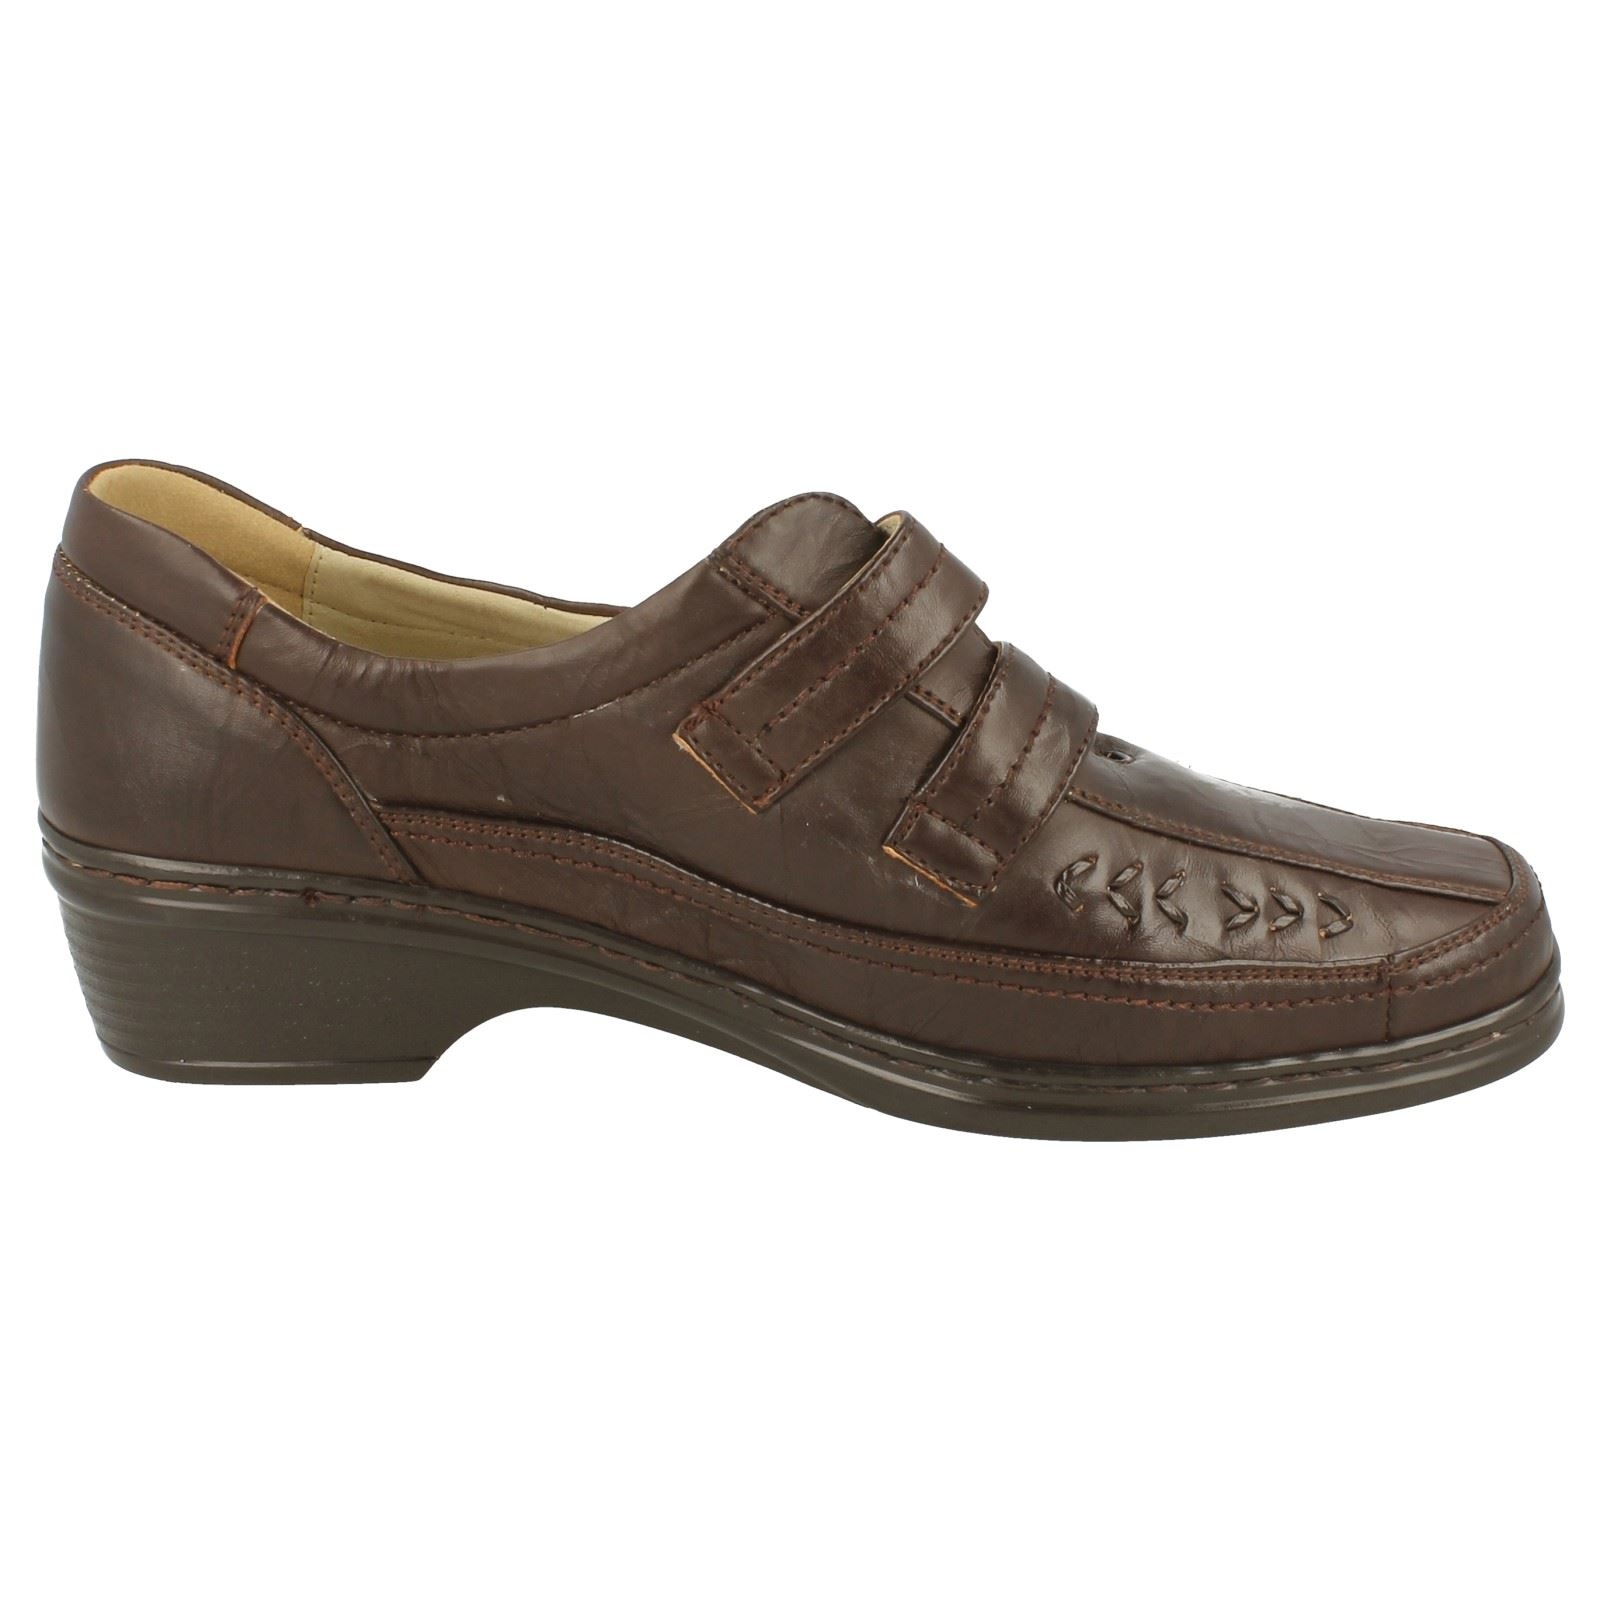 eaze low wedge casual shoes velcro fastening